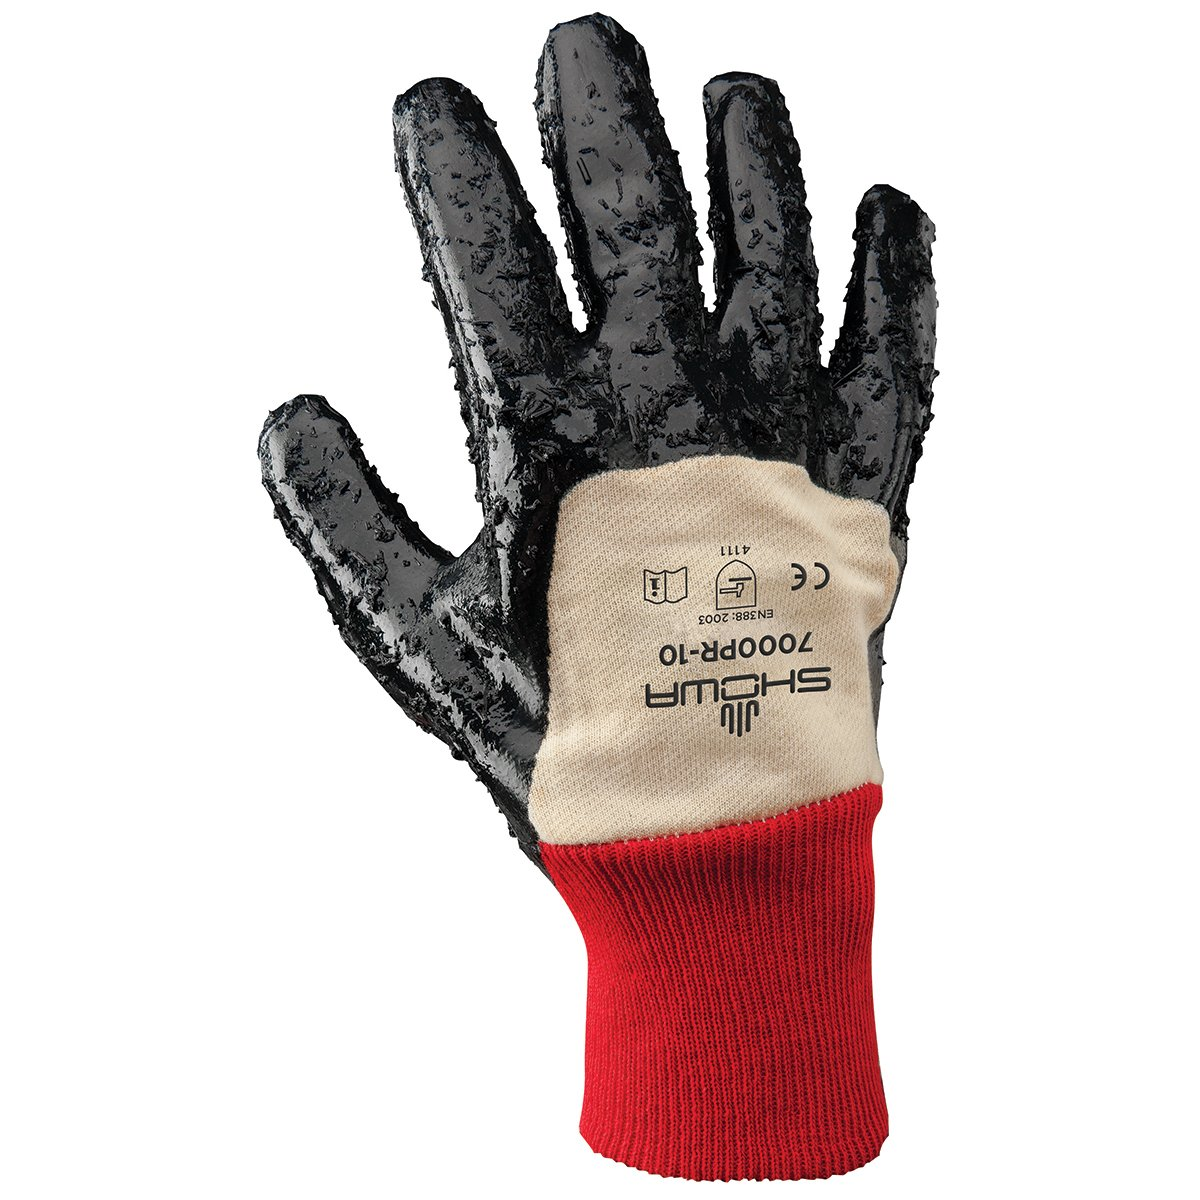 Seamless Knitted Liner Chemical Resistant Medium 12 Length Pack of 12 Pairs SHOWA Atlas 720 Fully Coated Nitrile Glove